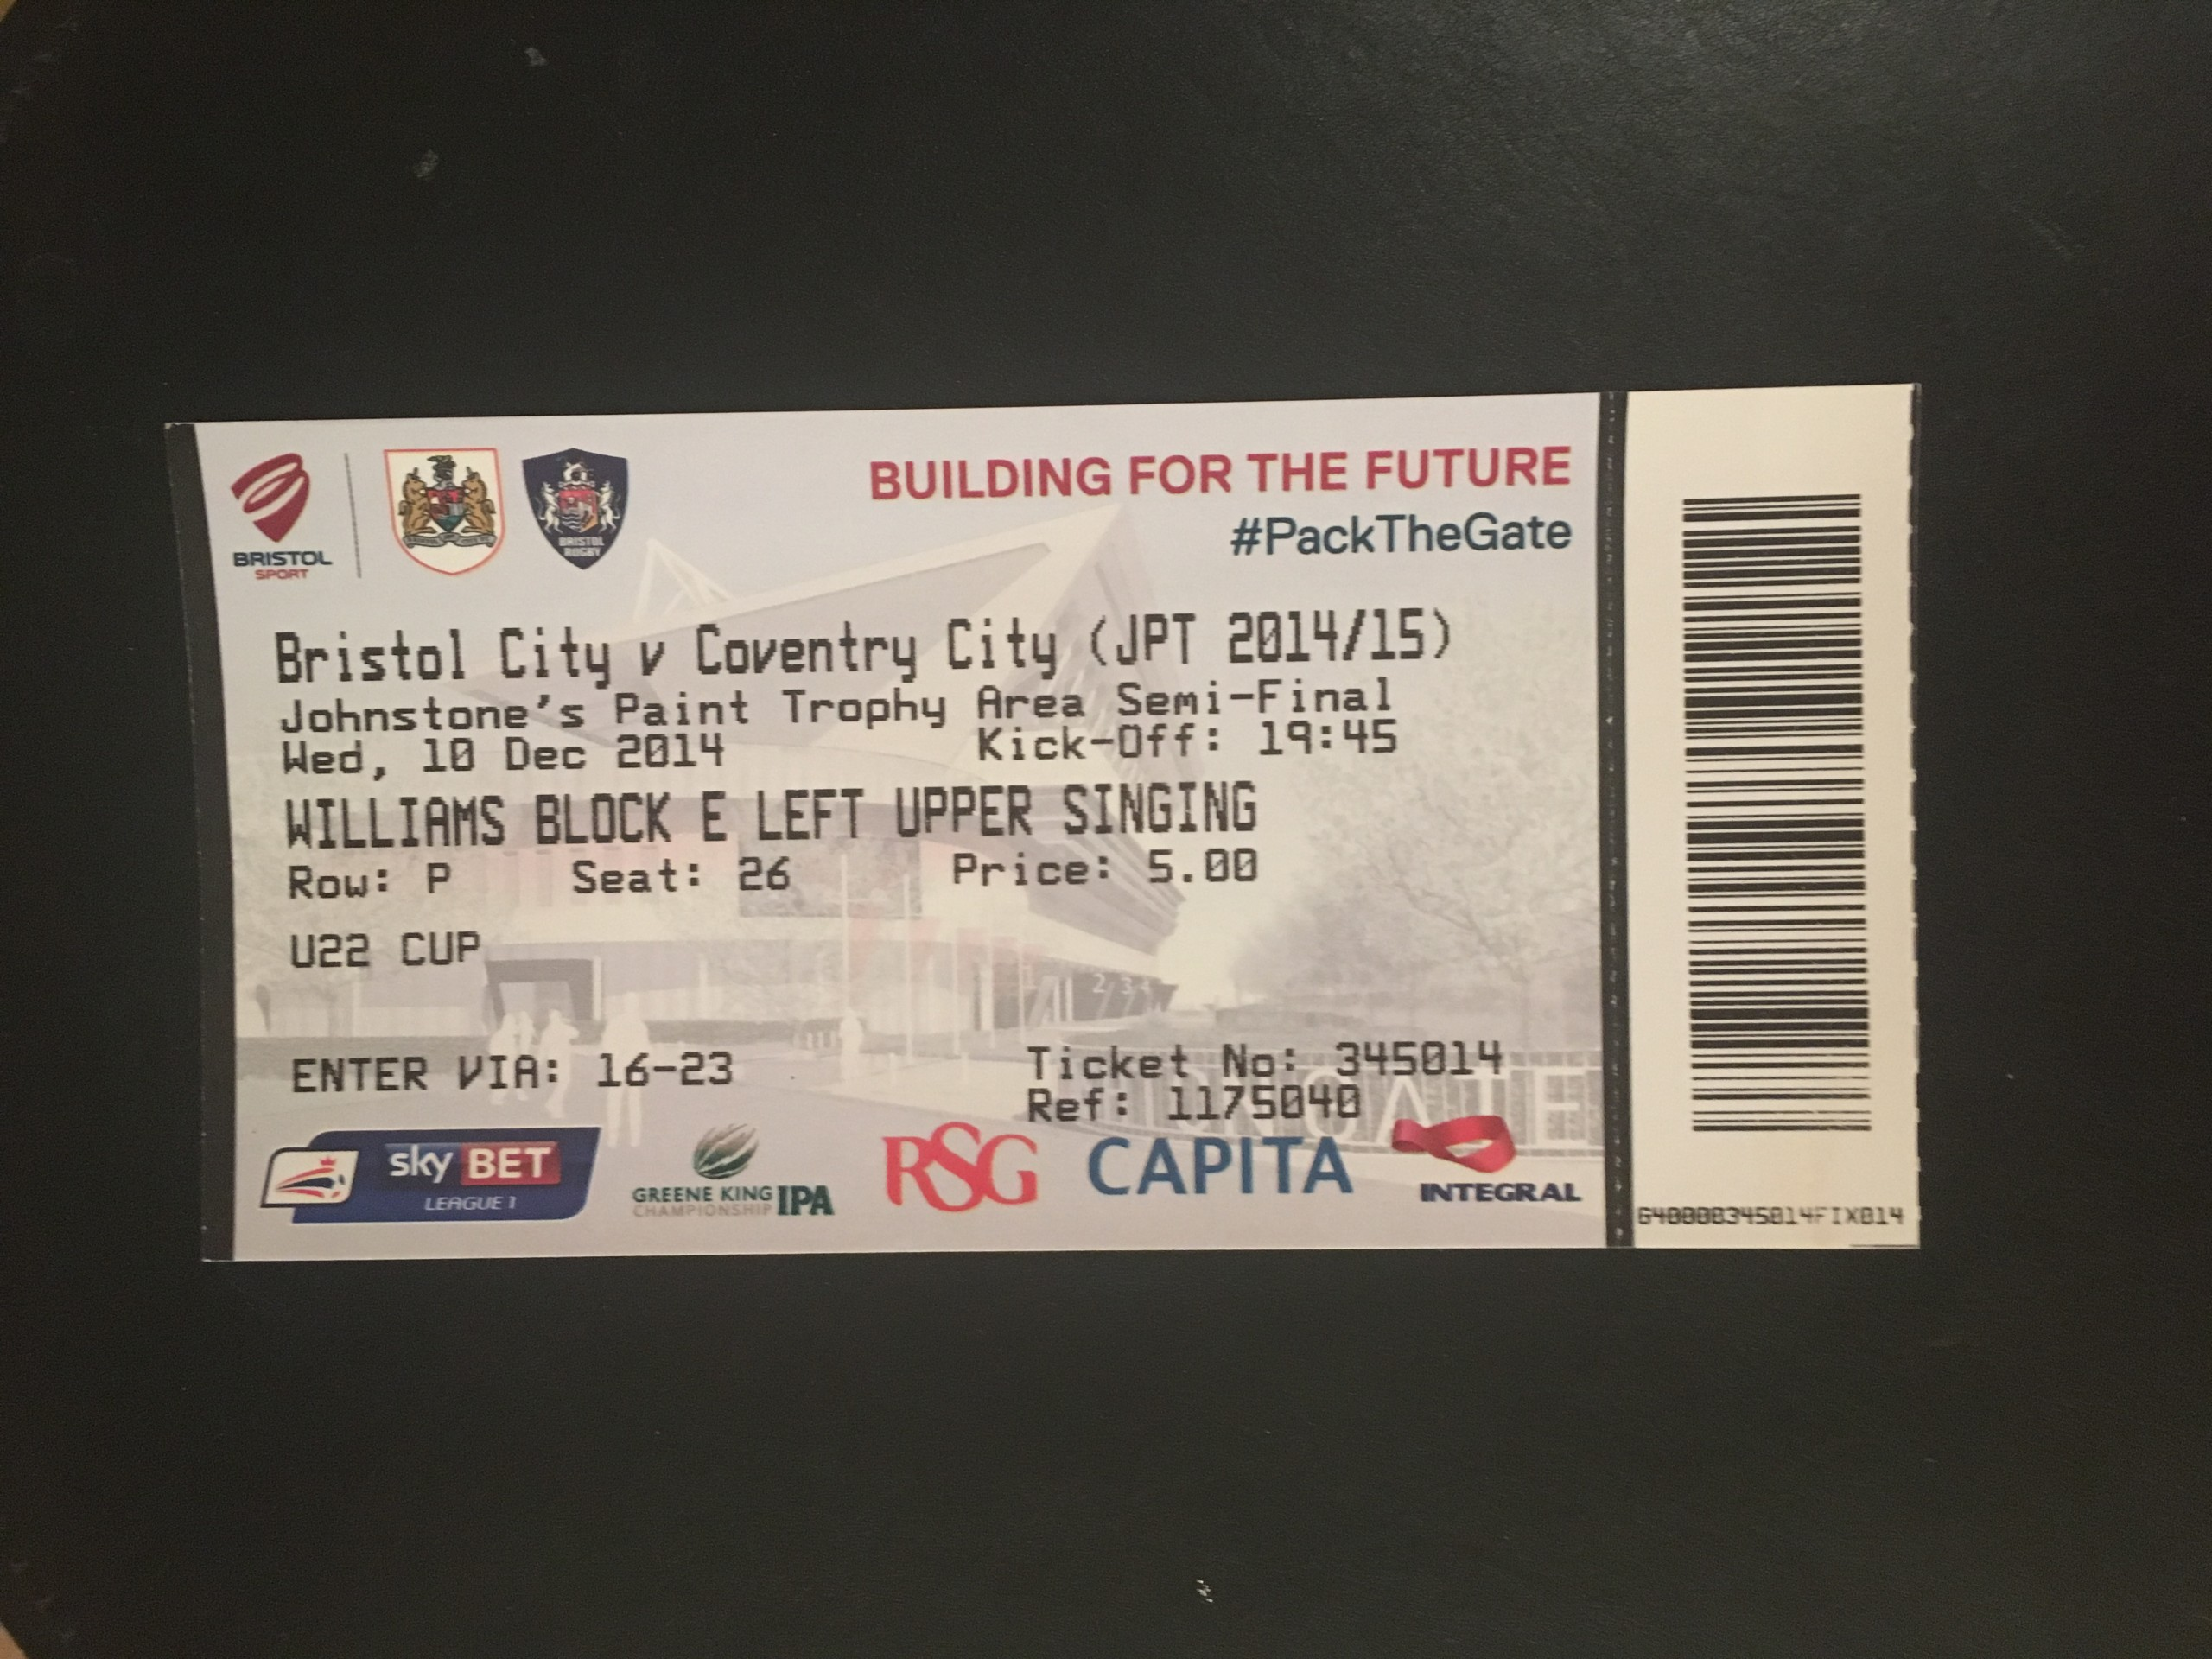 Bristol City v Coventry City 10-12-2014 Ticket